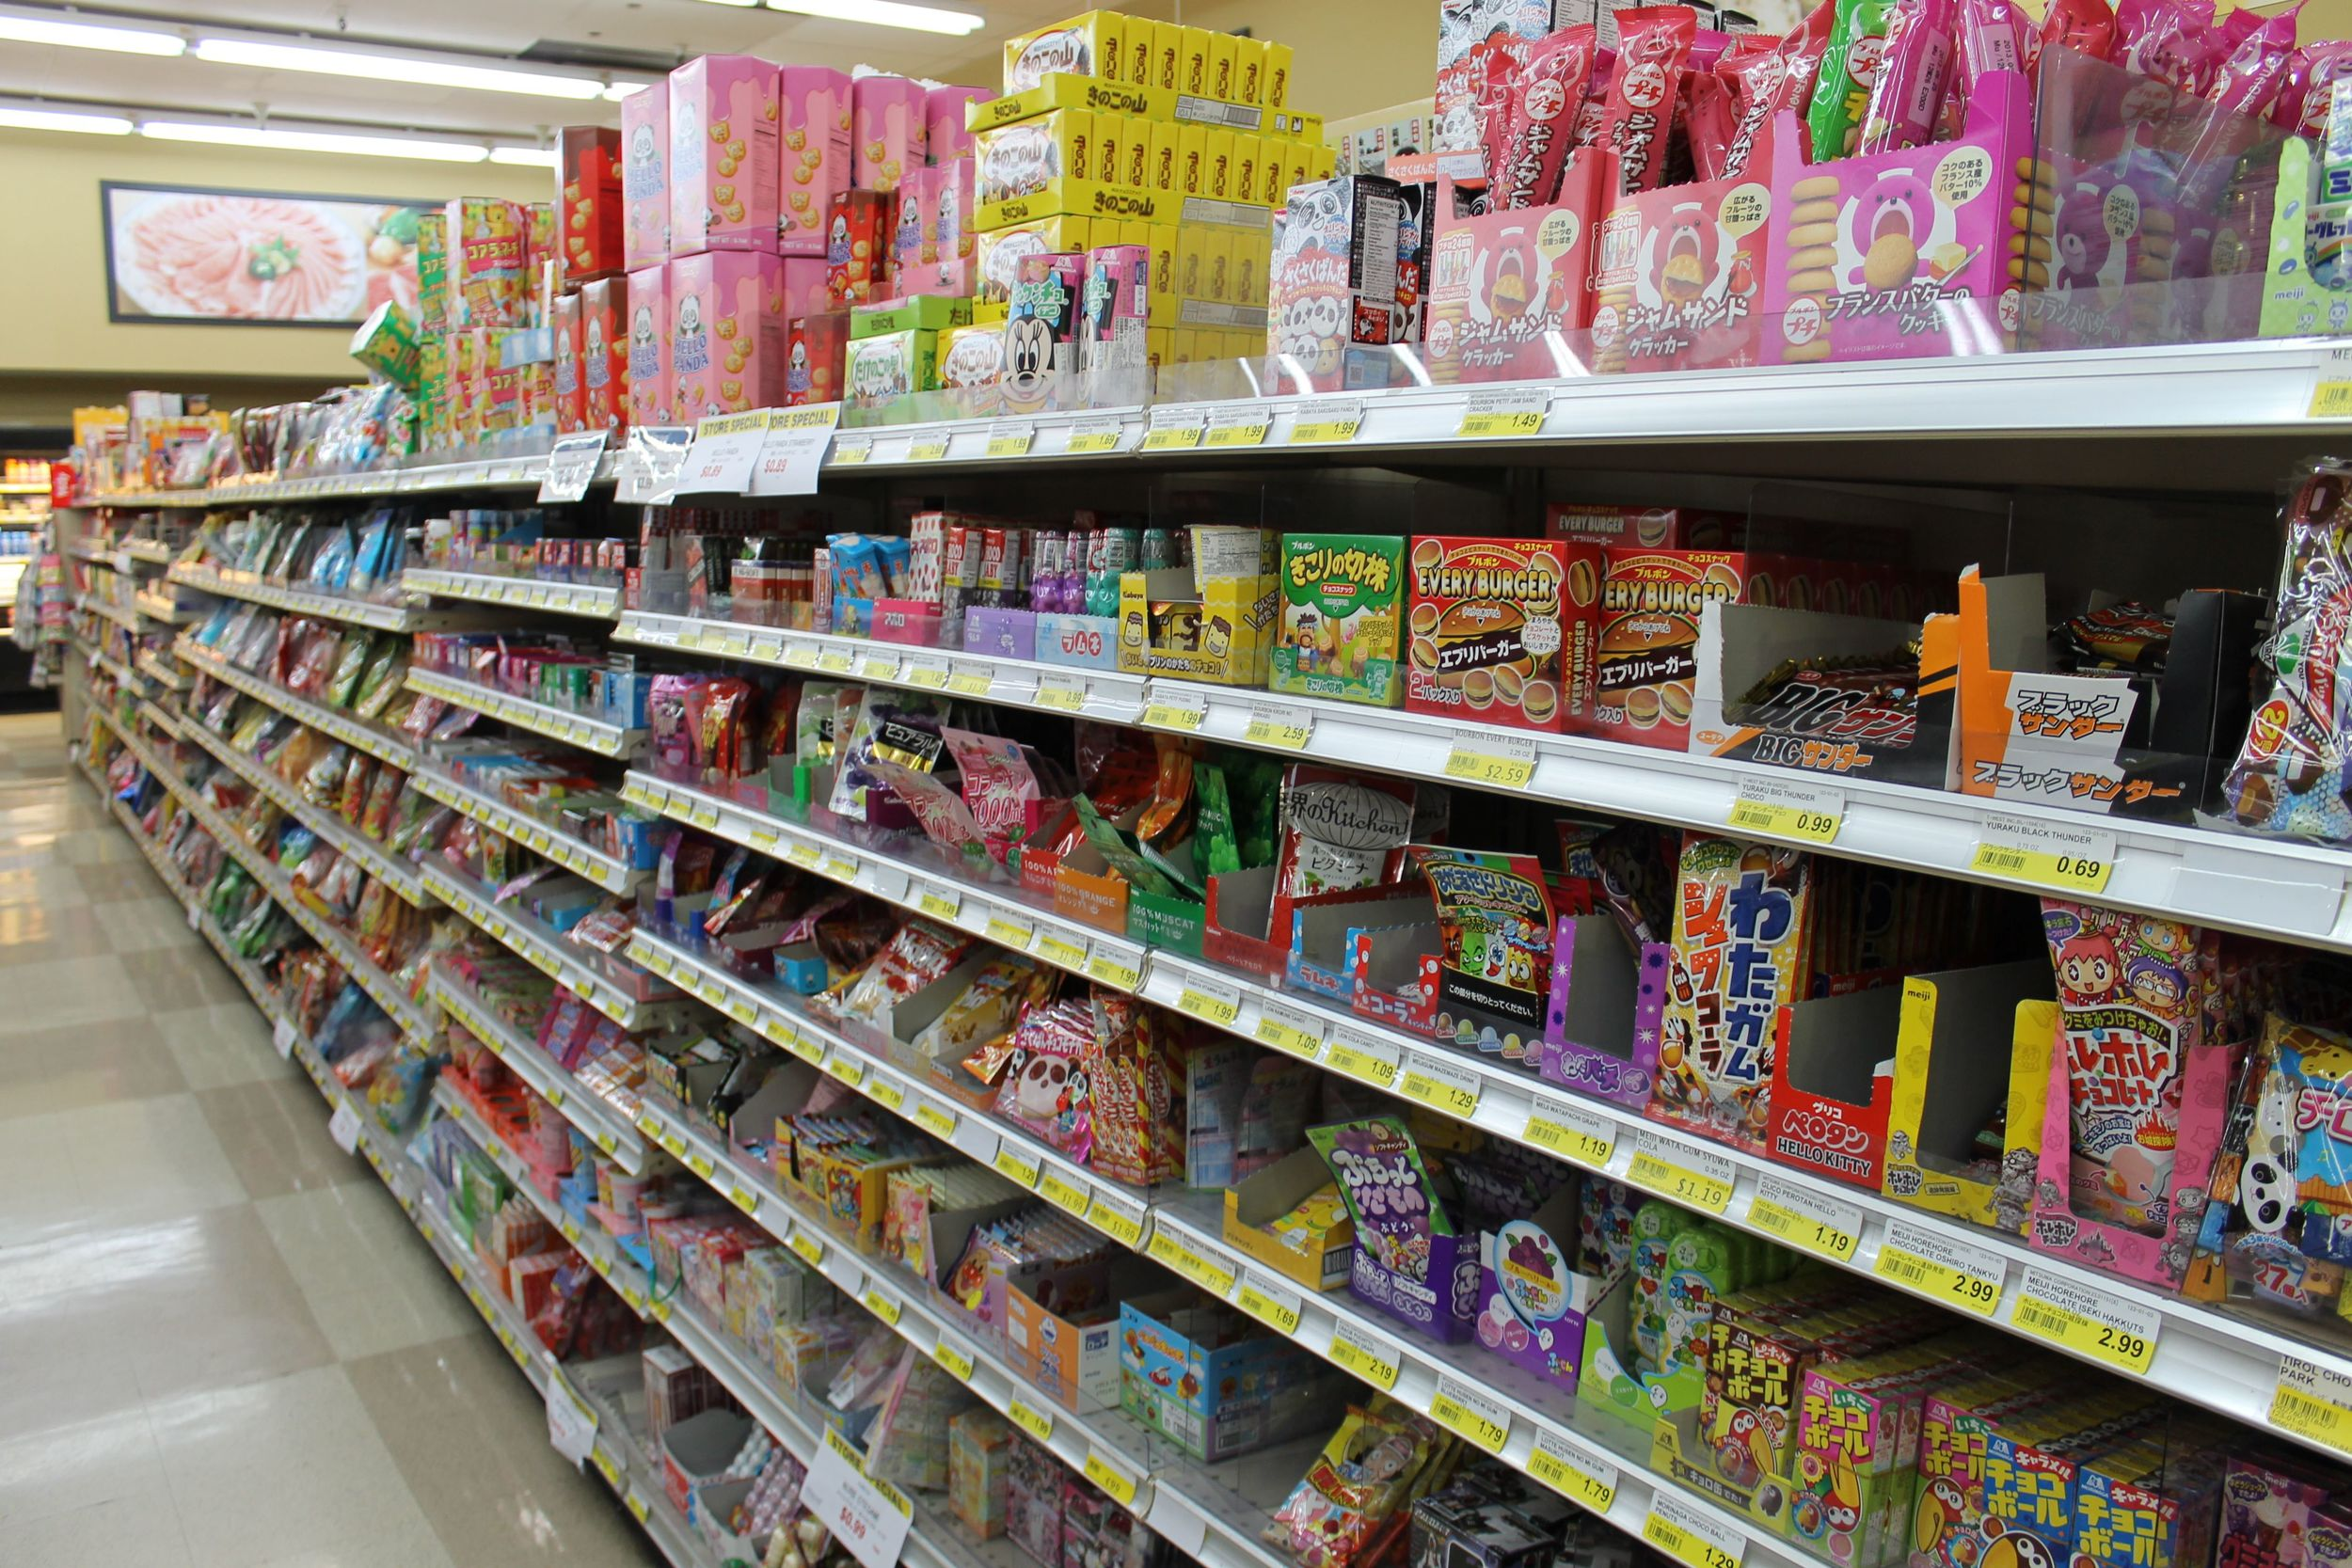 The candy aisle